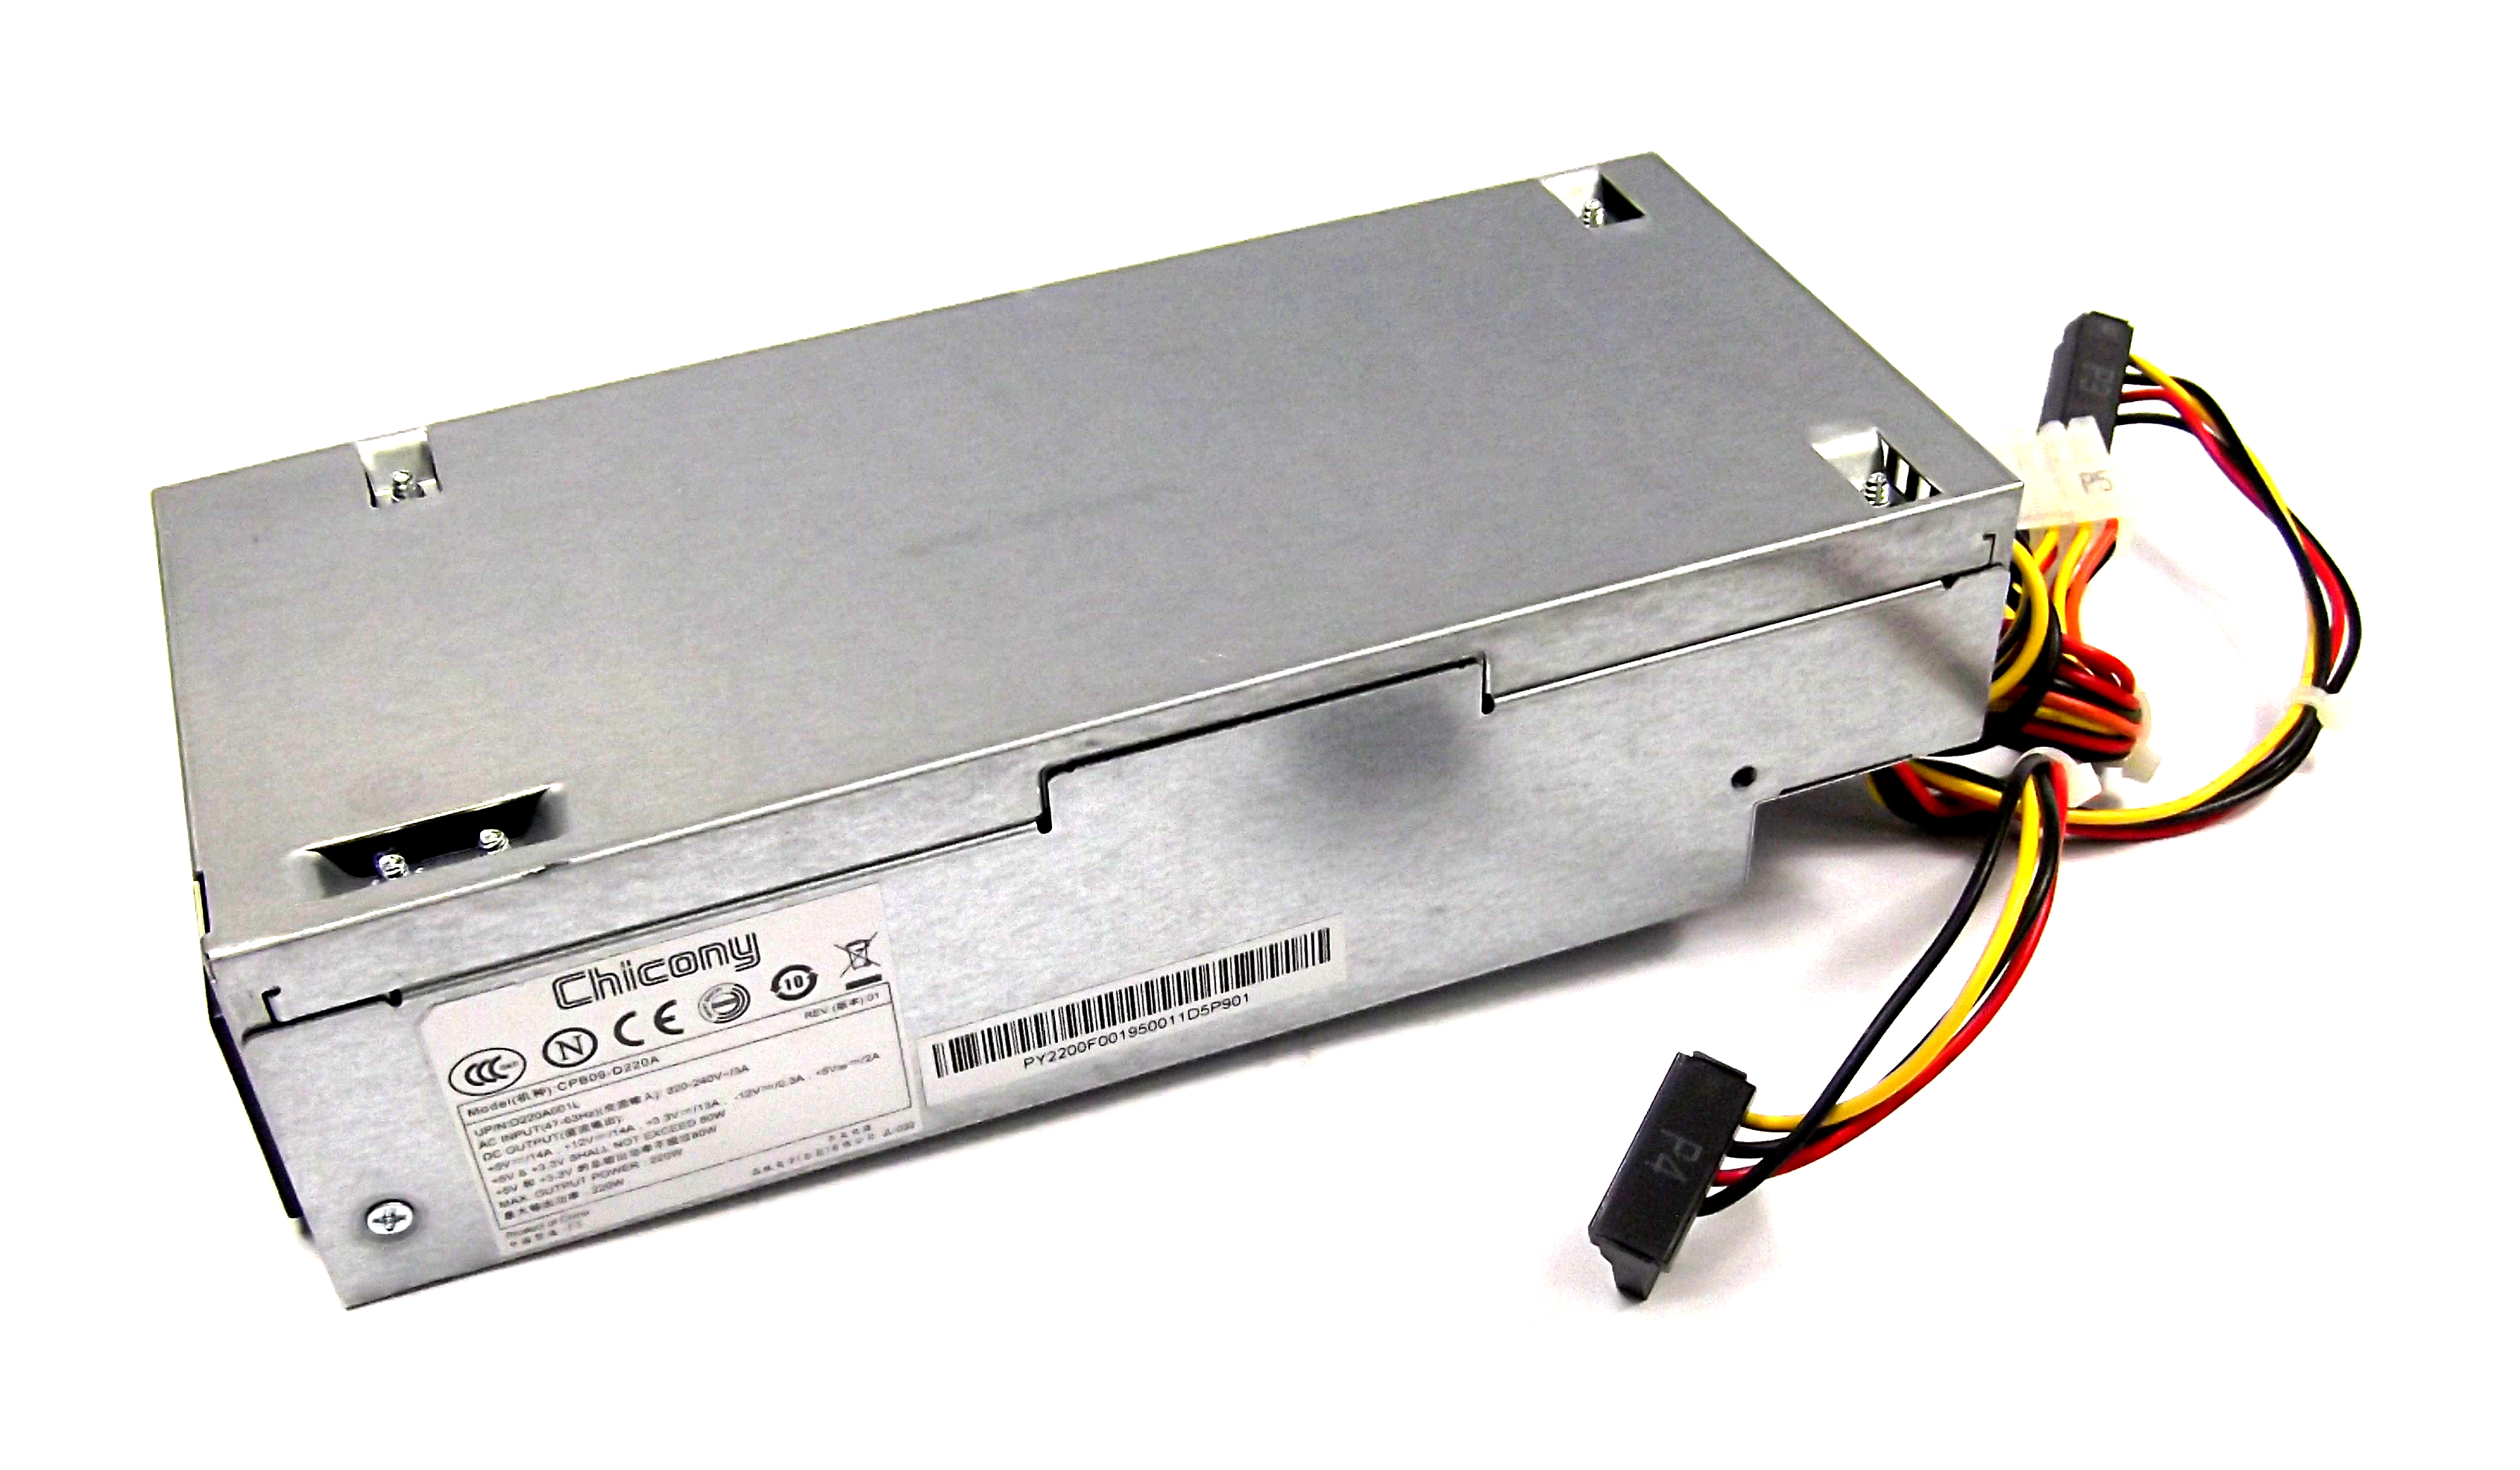 Chicony D220A001L 220W Power Supply Unit - CPB09-D220A